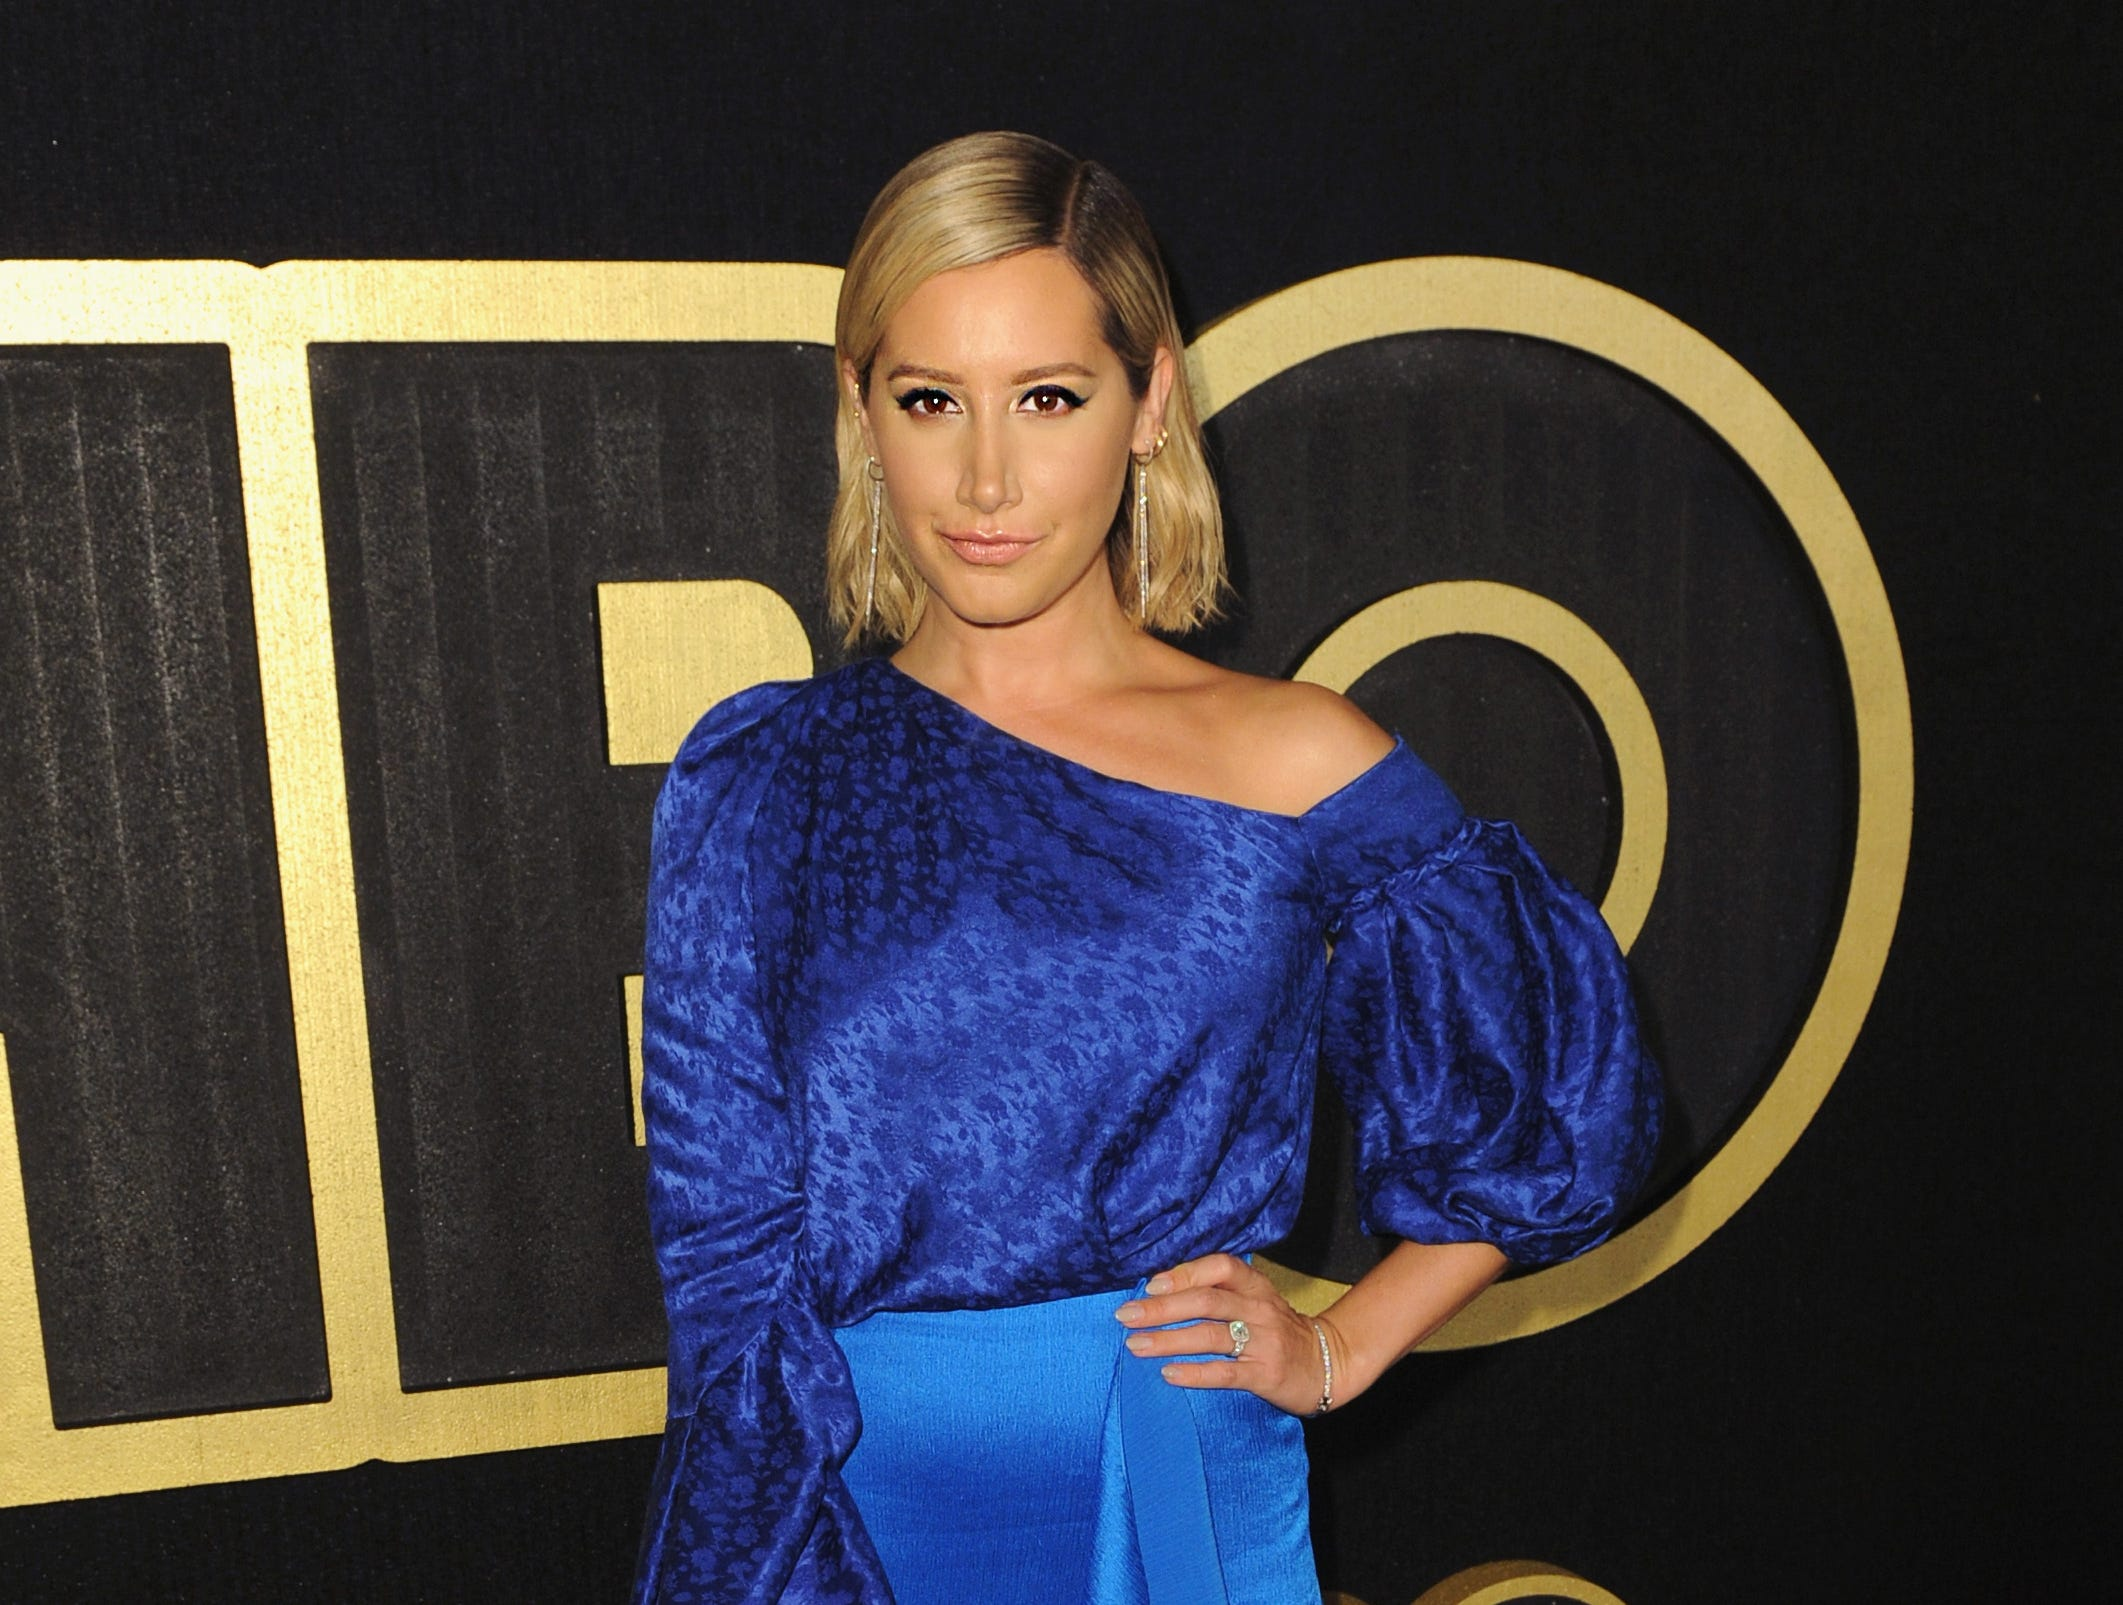 LOS ANGELES, CA - SEPTEMBER 17:  Ashley Tisdale arrives at HBO's Official 2018 Emmy After Party on September 17, 2018 in Los Angeles, California. (Photo by FilmMagic/FilmMagic for HBO ) ORG XMIT: 775224236 ORIG FILE ID: 1035321128